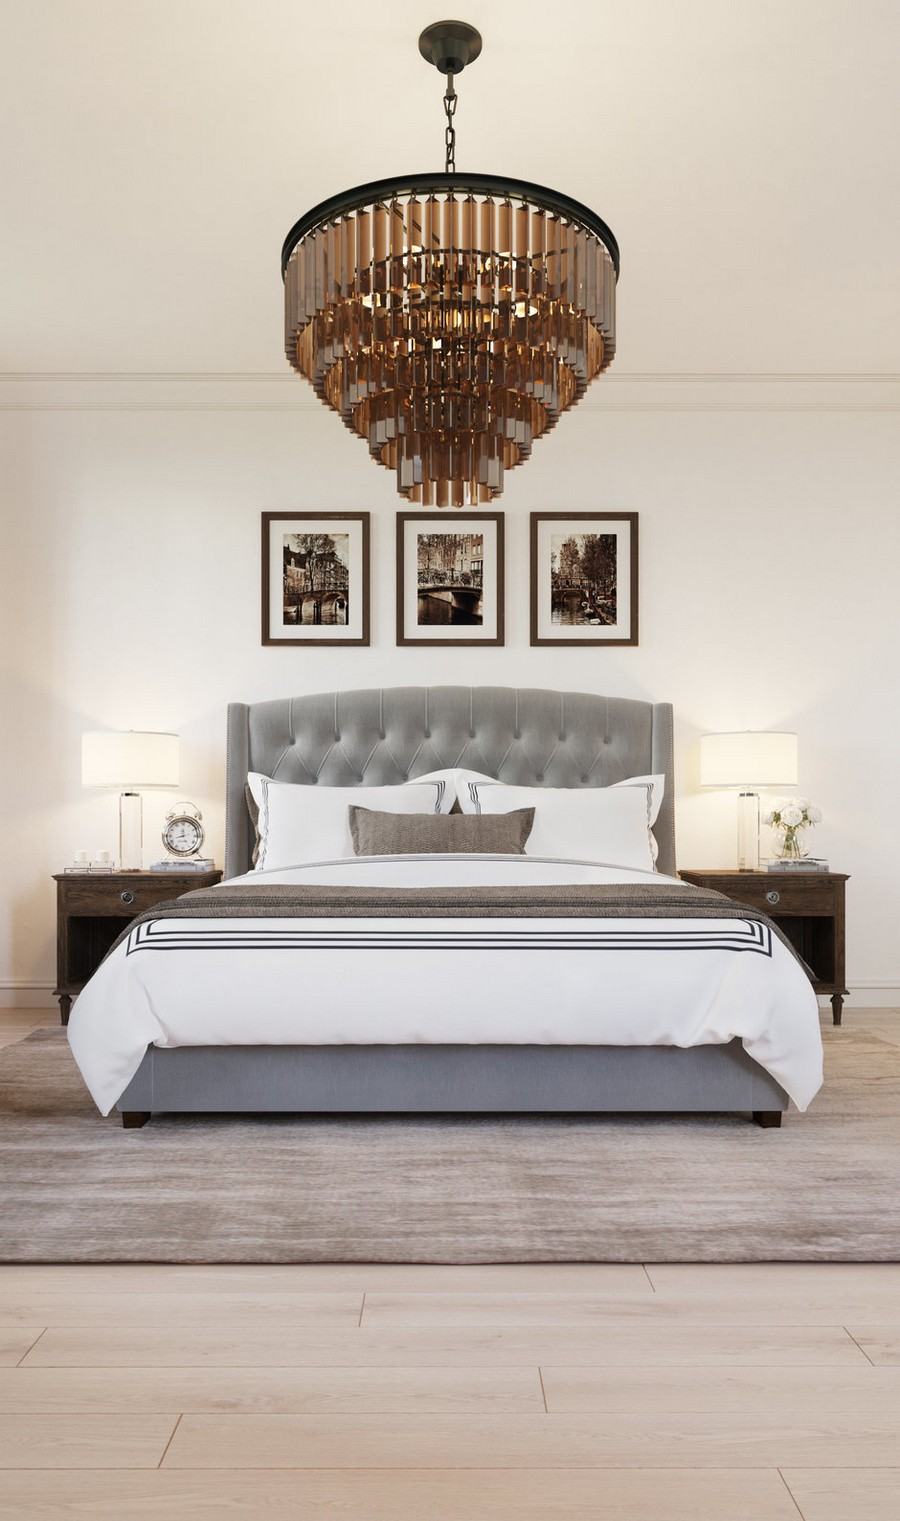 4-gray-beige-dark-brown-bedroom-interior-design-in-American-transitional-style-multilayered-chandelier-symmetrical-furniture-arrangement-nightstands-upholstered-bed-capitone-pictures-rug-bedside-lamps